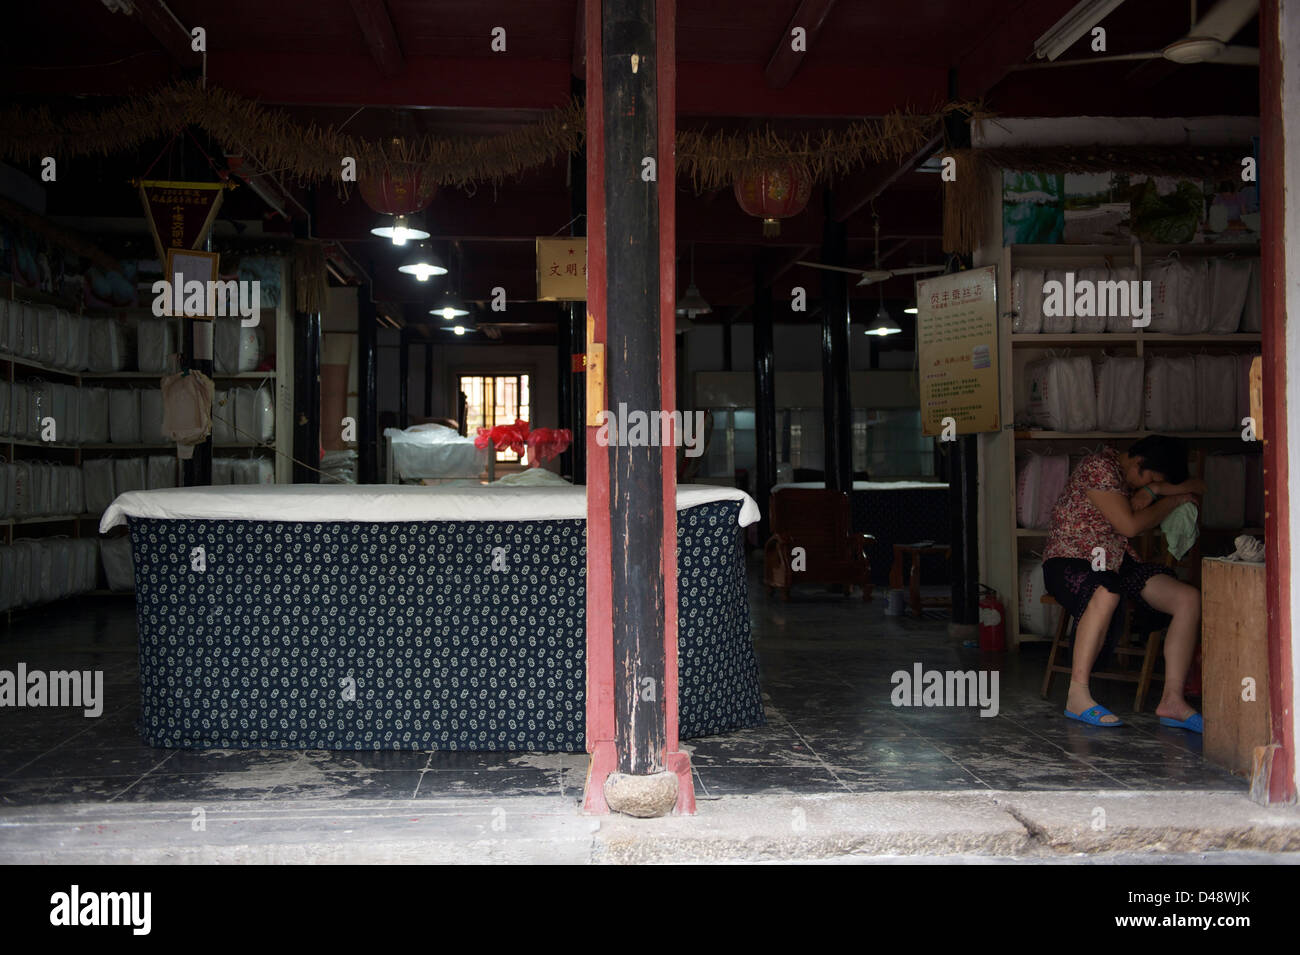 Laundry shop stock photos laundry shop stock images alamy laundry shop stock image solutioingenieria Images